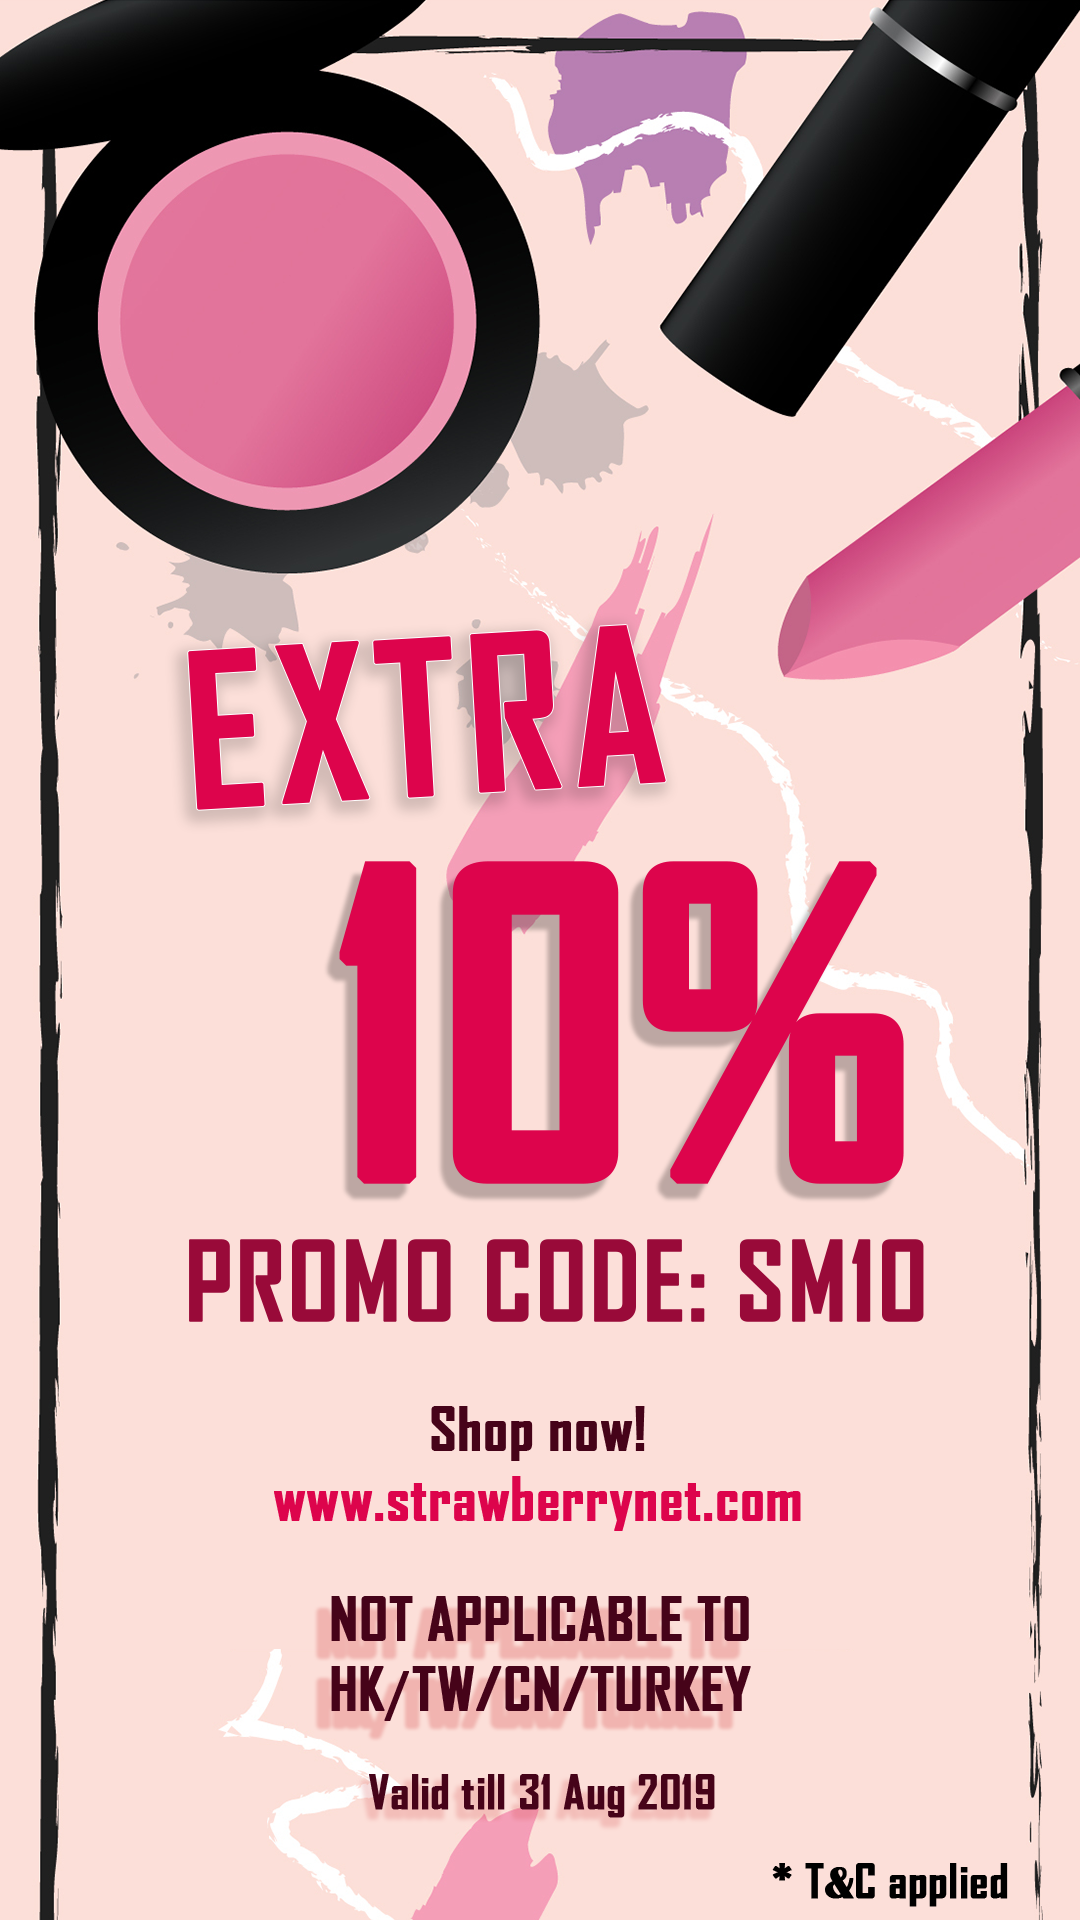 Social media exclusive! ️Use code [SM10] to receive